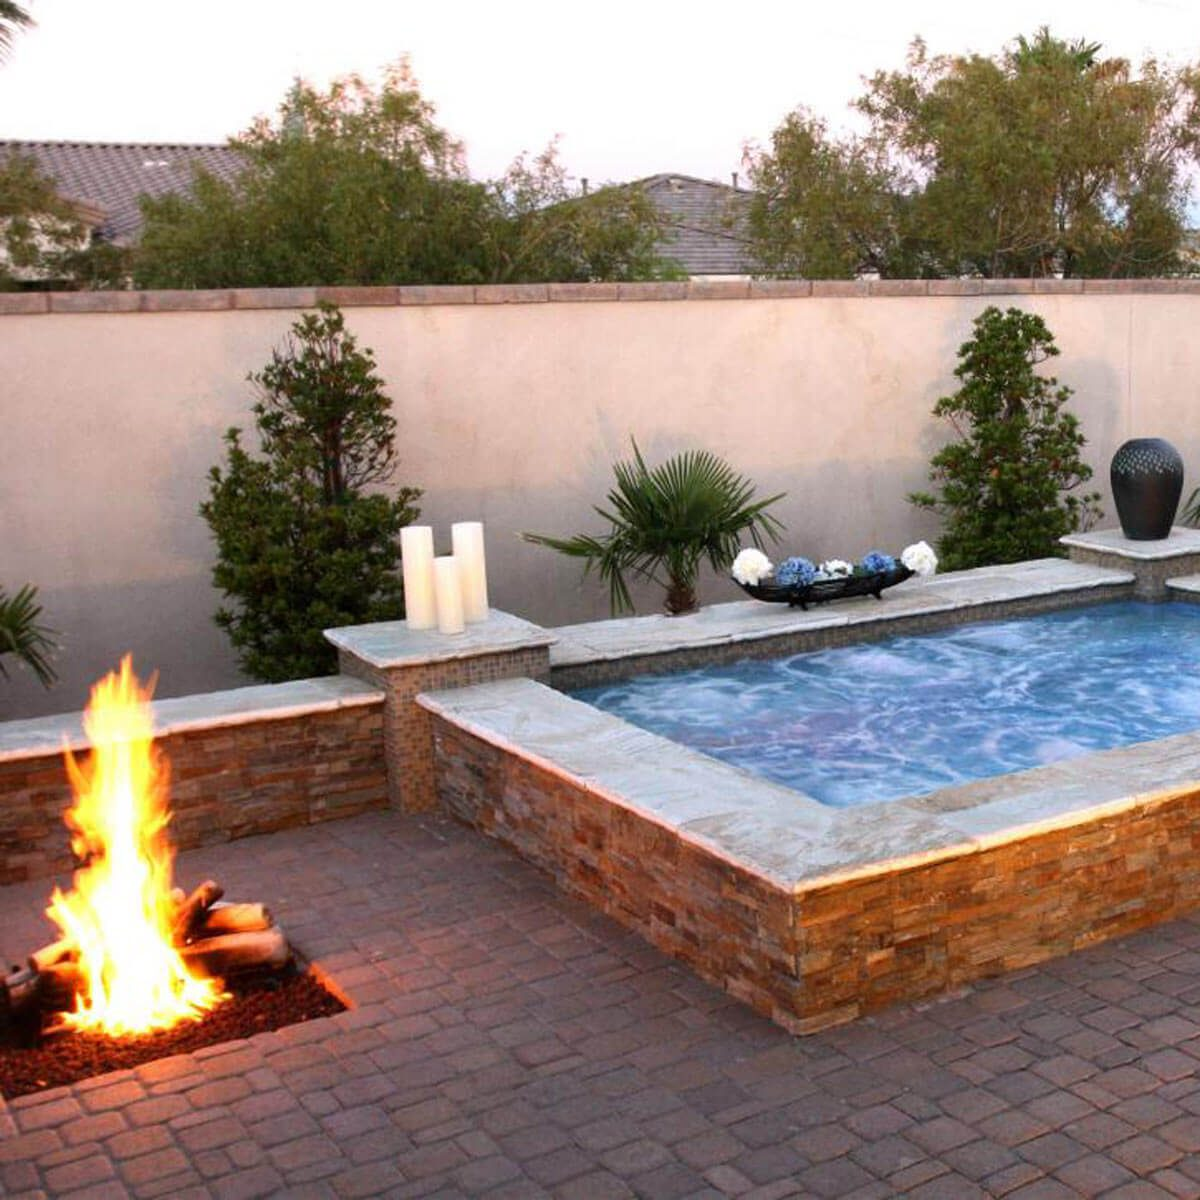 Cool Fire Pit Ideas: Spa Fire Pit